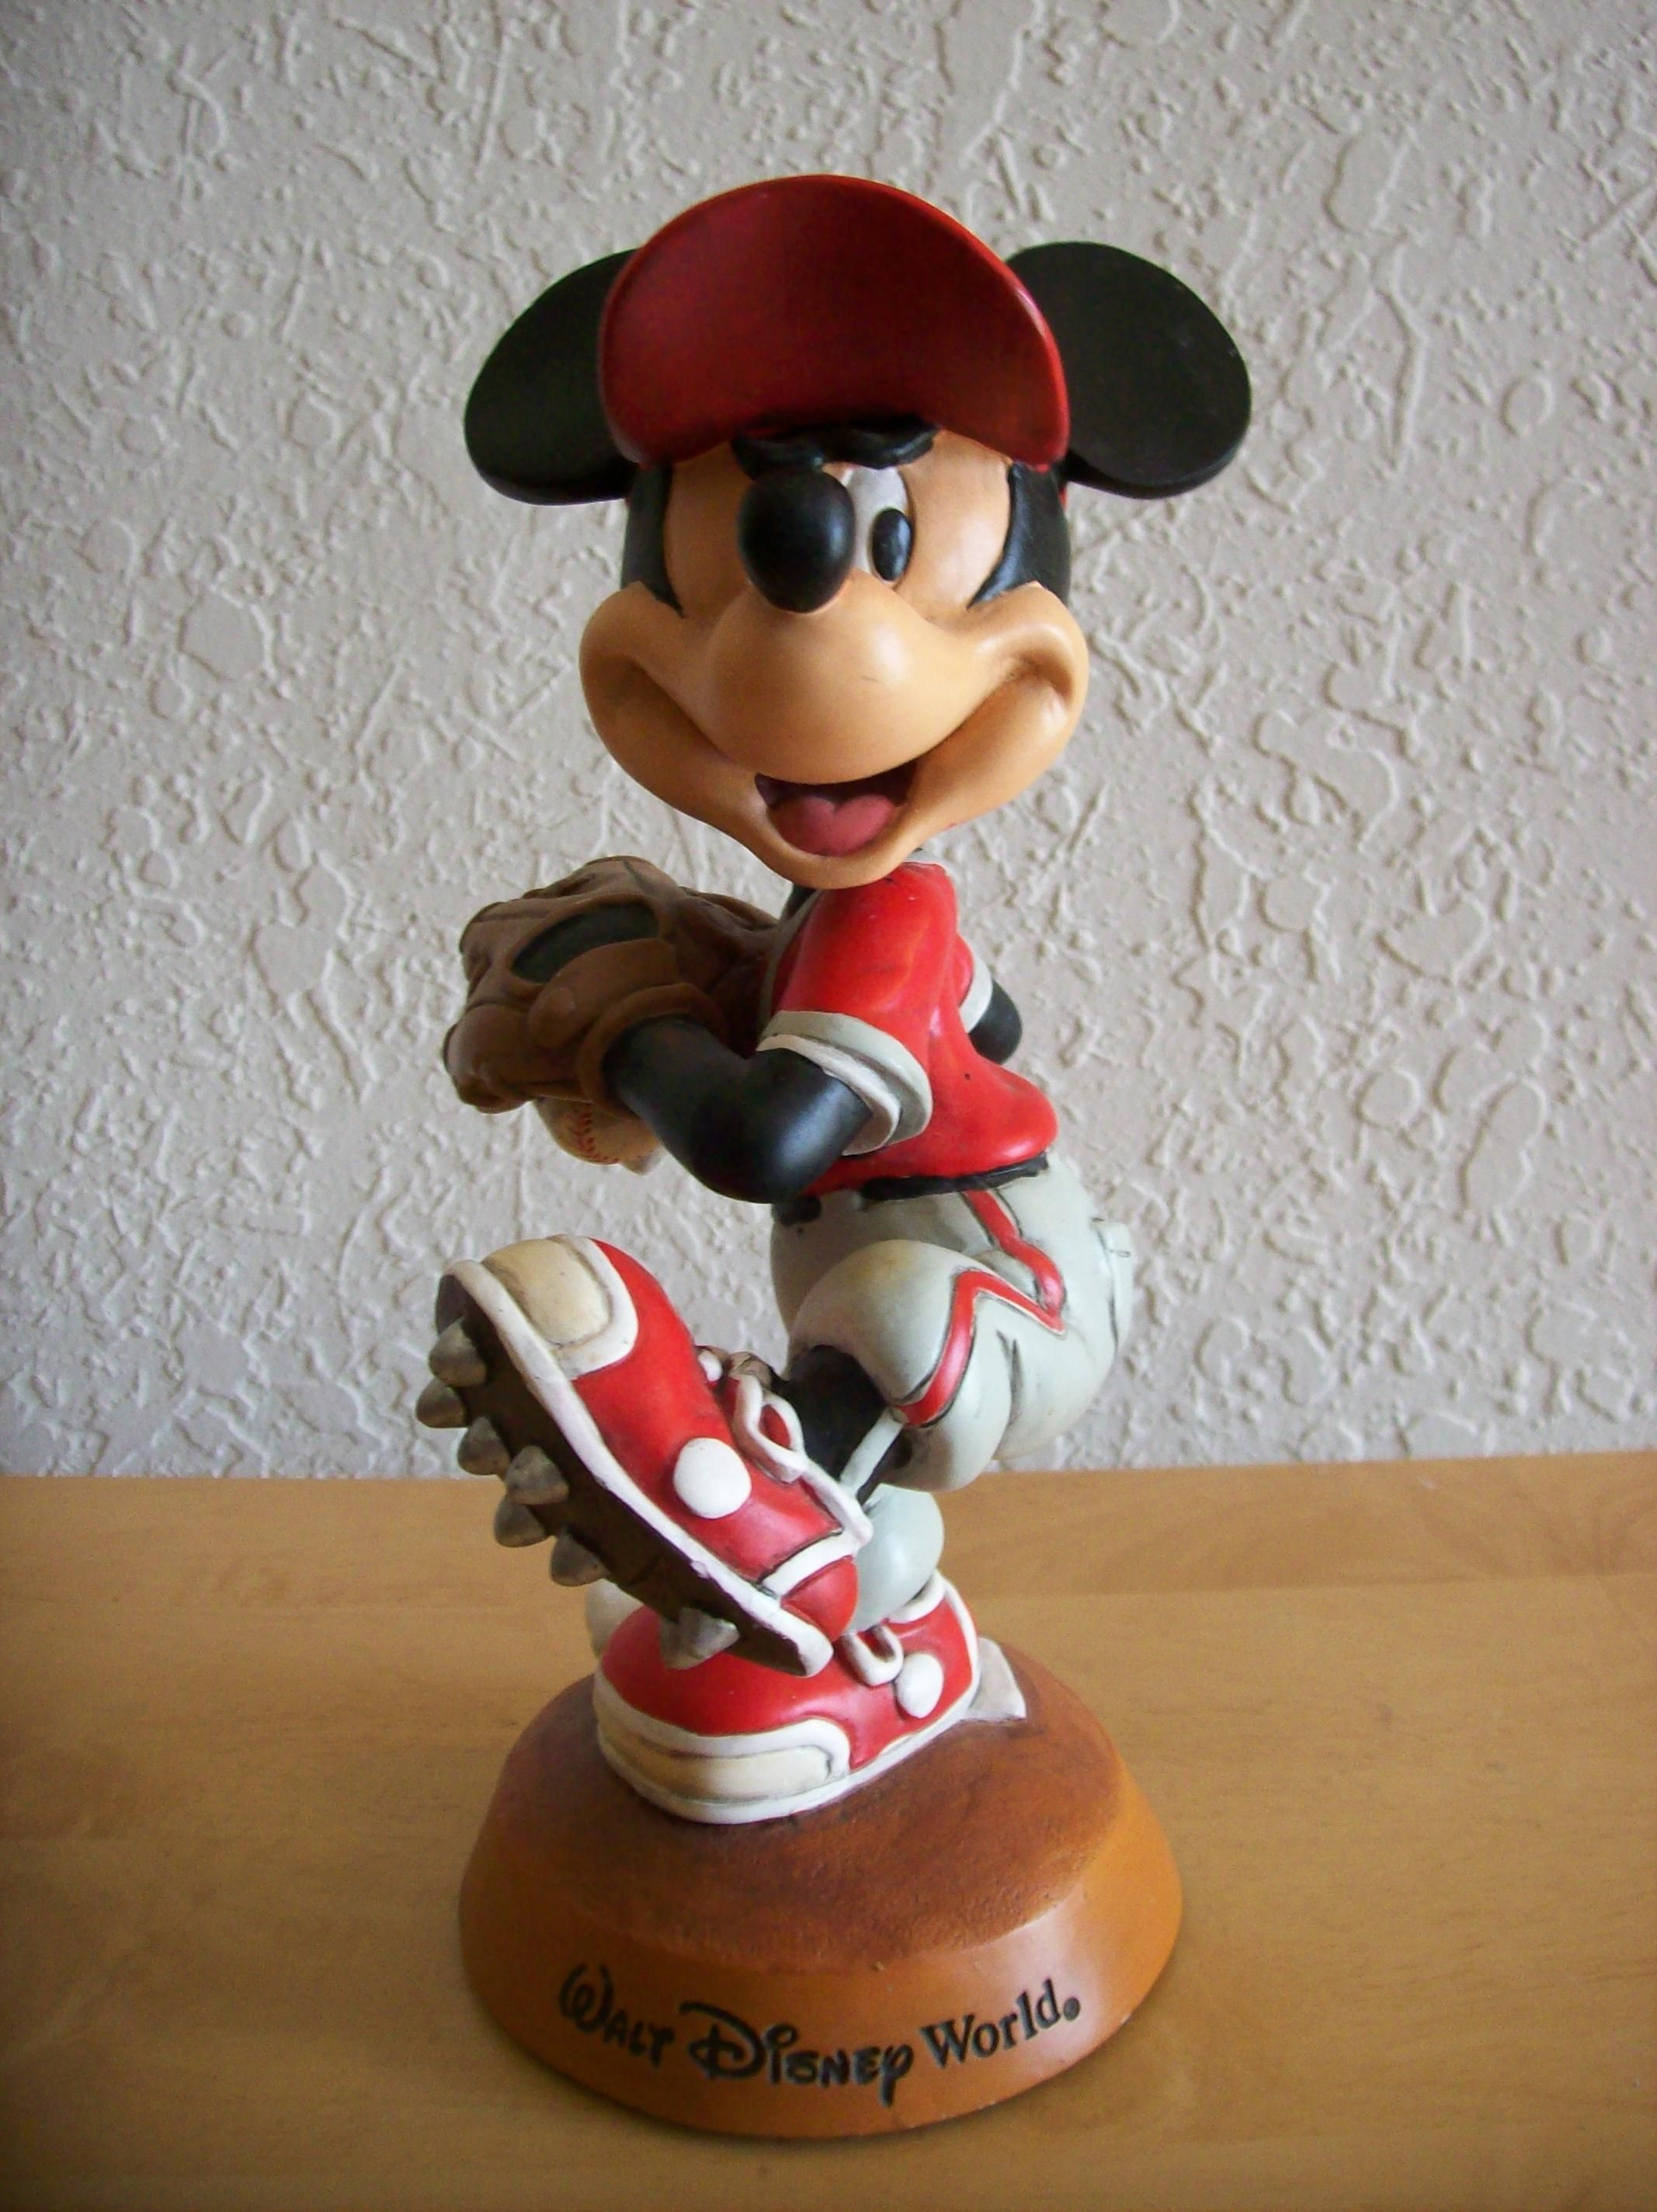 89a039f5947 Walt Disney World Mickey Mouse Baseball Bobble Head